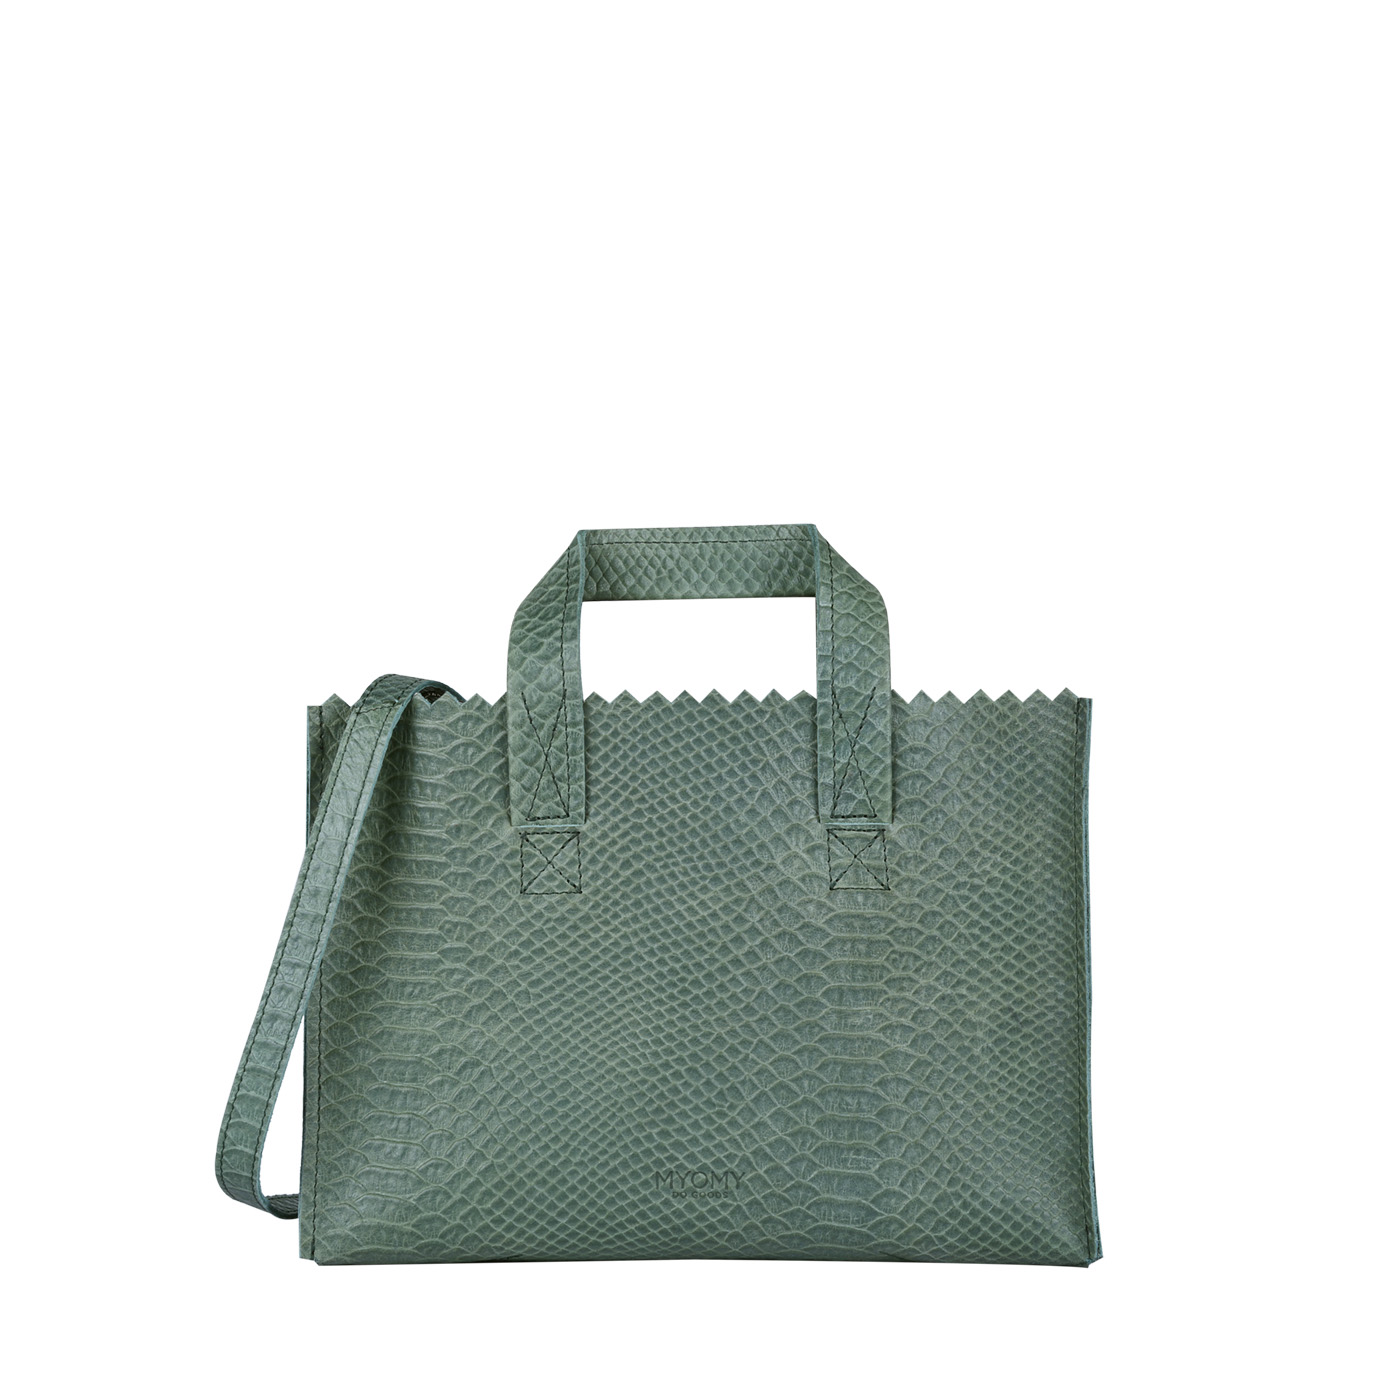 MY PAPER BAG Mini handbag cross-body – anaconda sea green